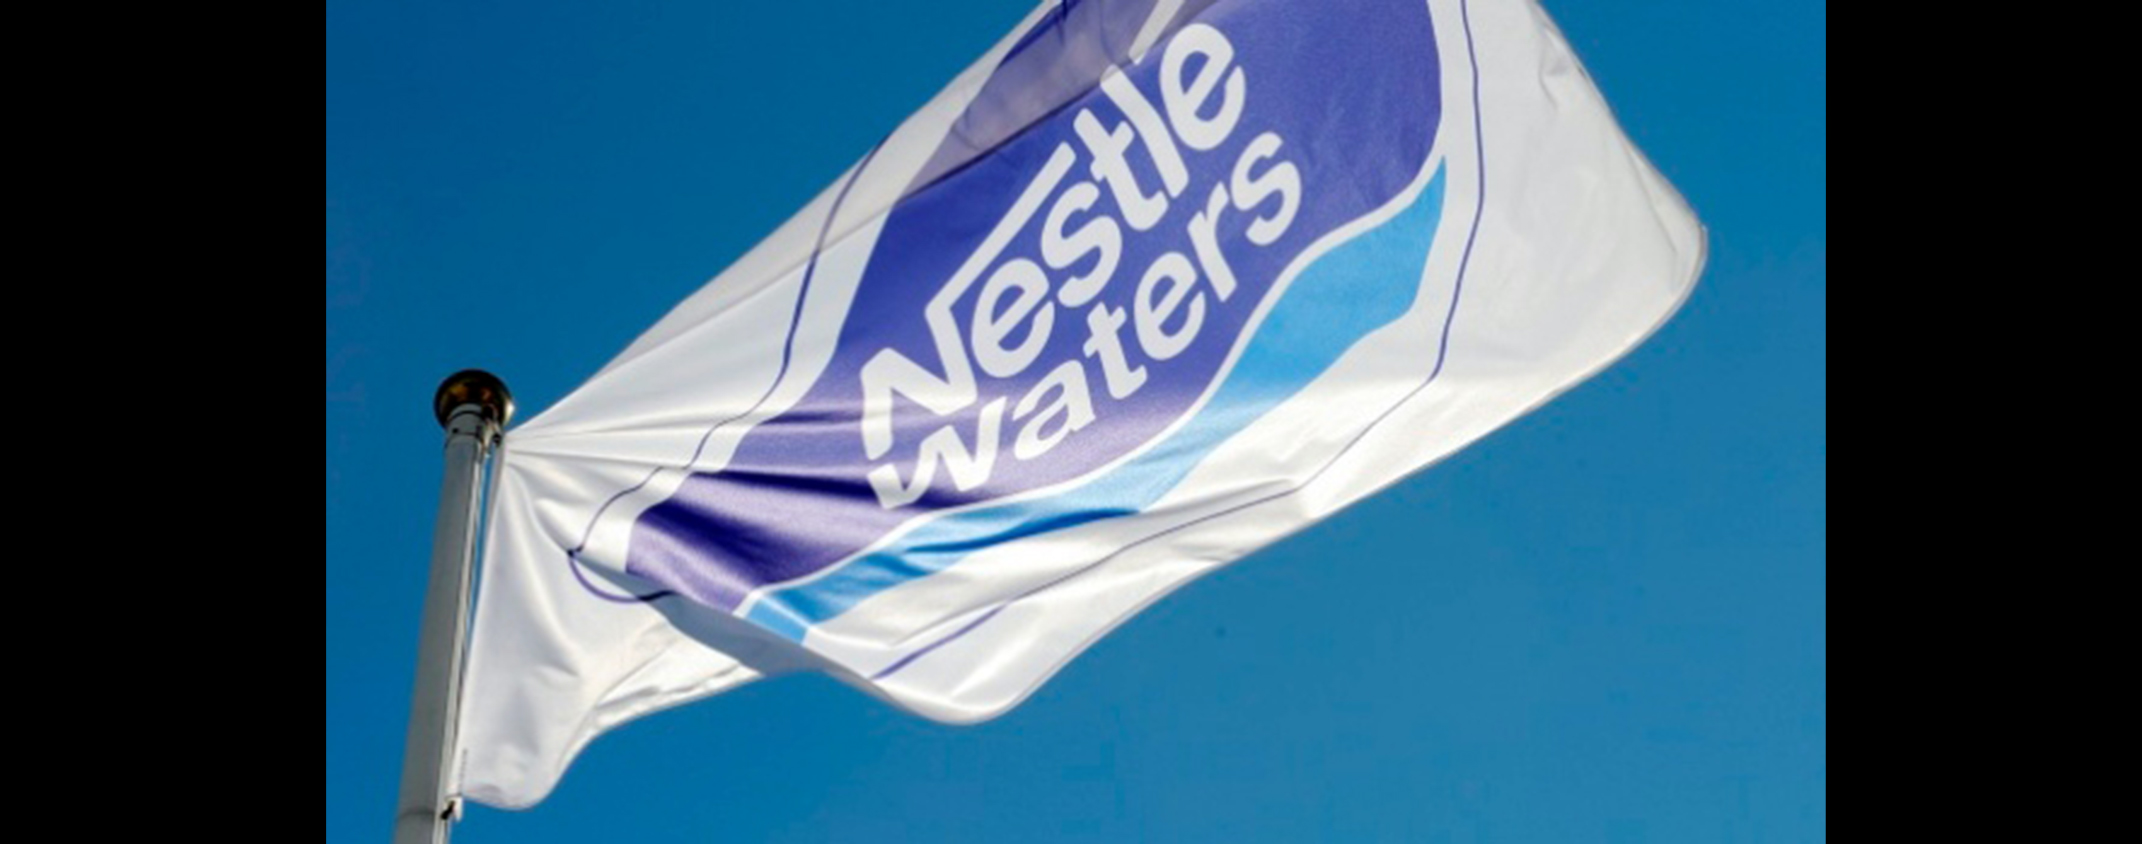 Photo of Nestle Flag blowing in the wind